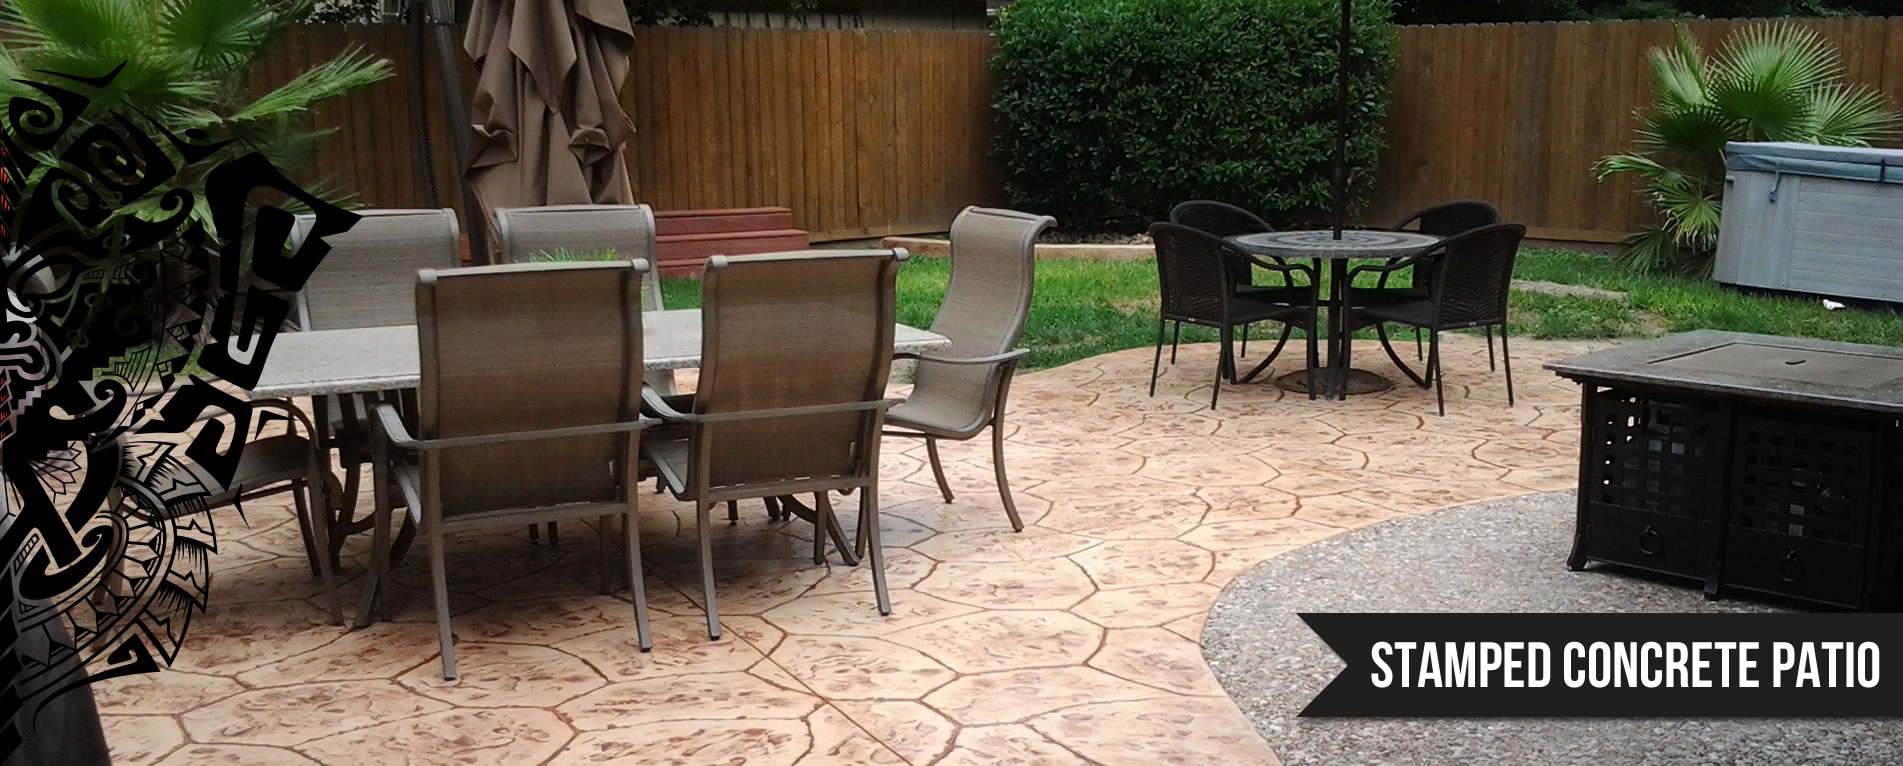 Houston Decorative Concrete Stamped Stained Concrete